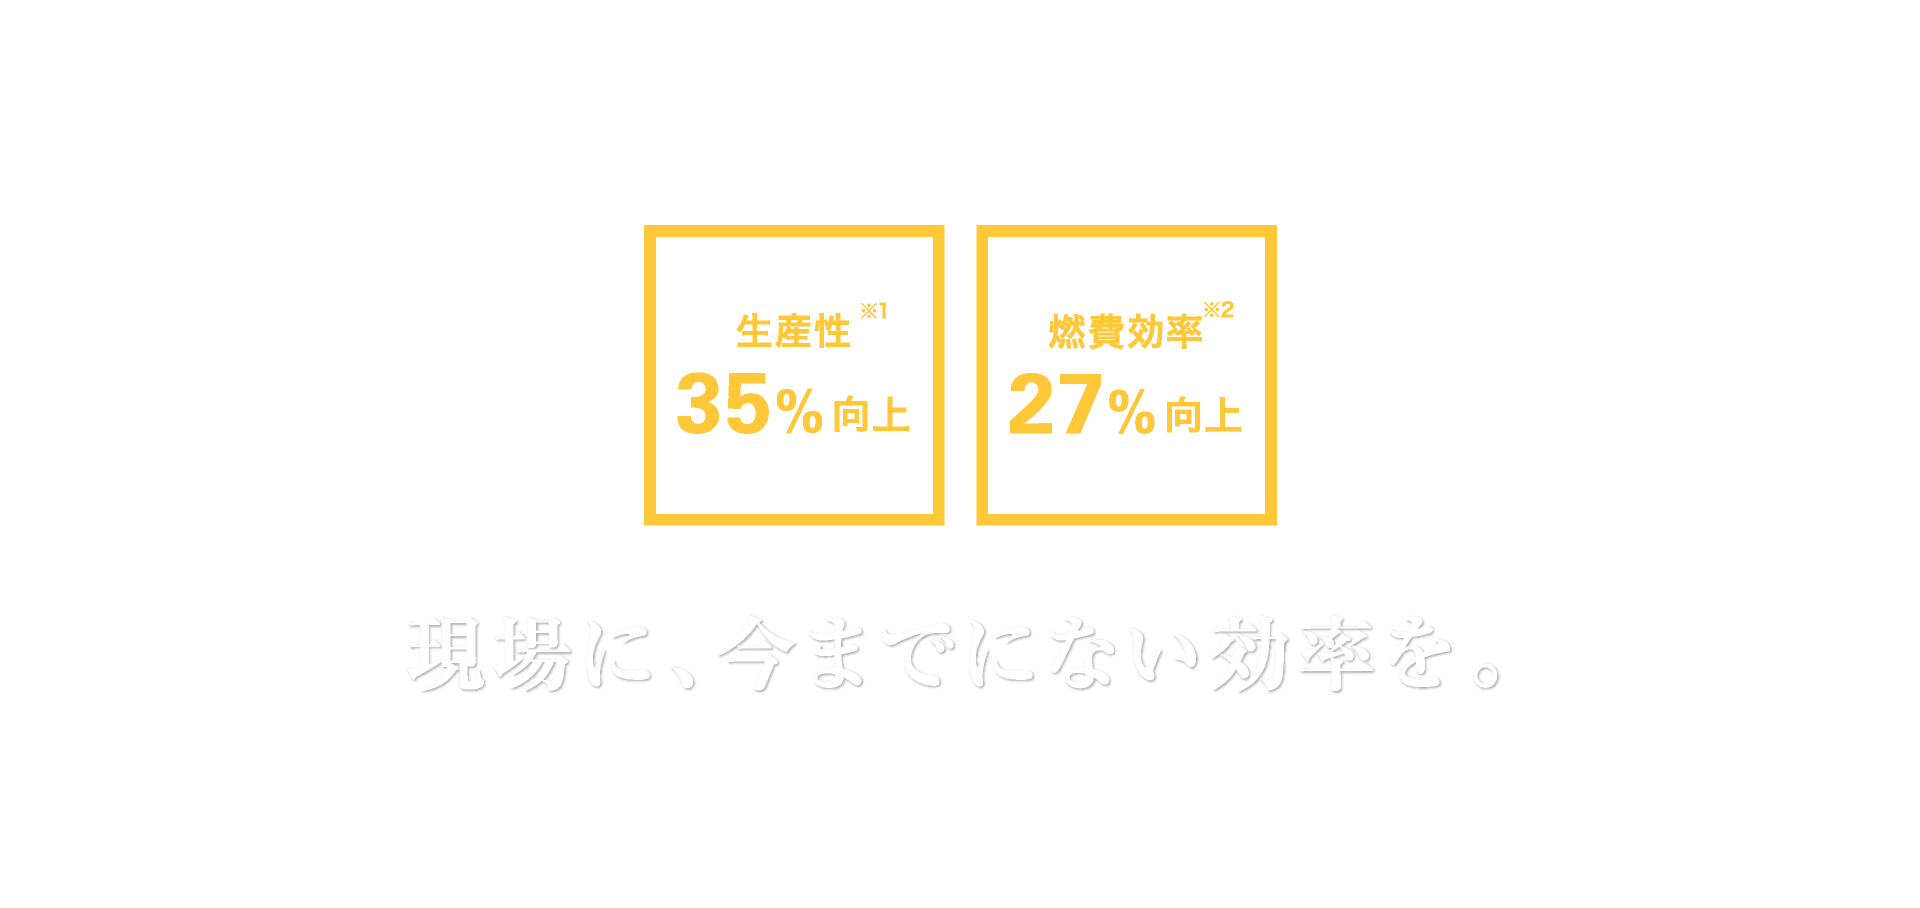 CAT CONNECT SOLUTIONS|現場に、今までにない効率を。